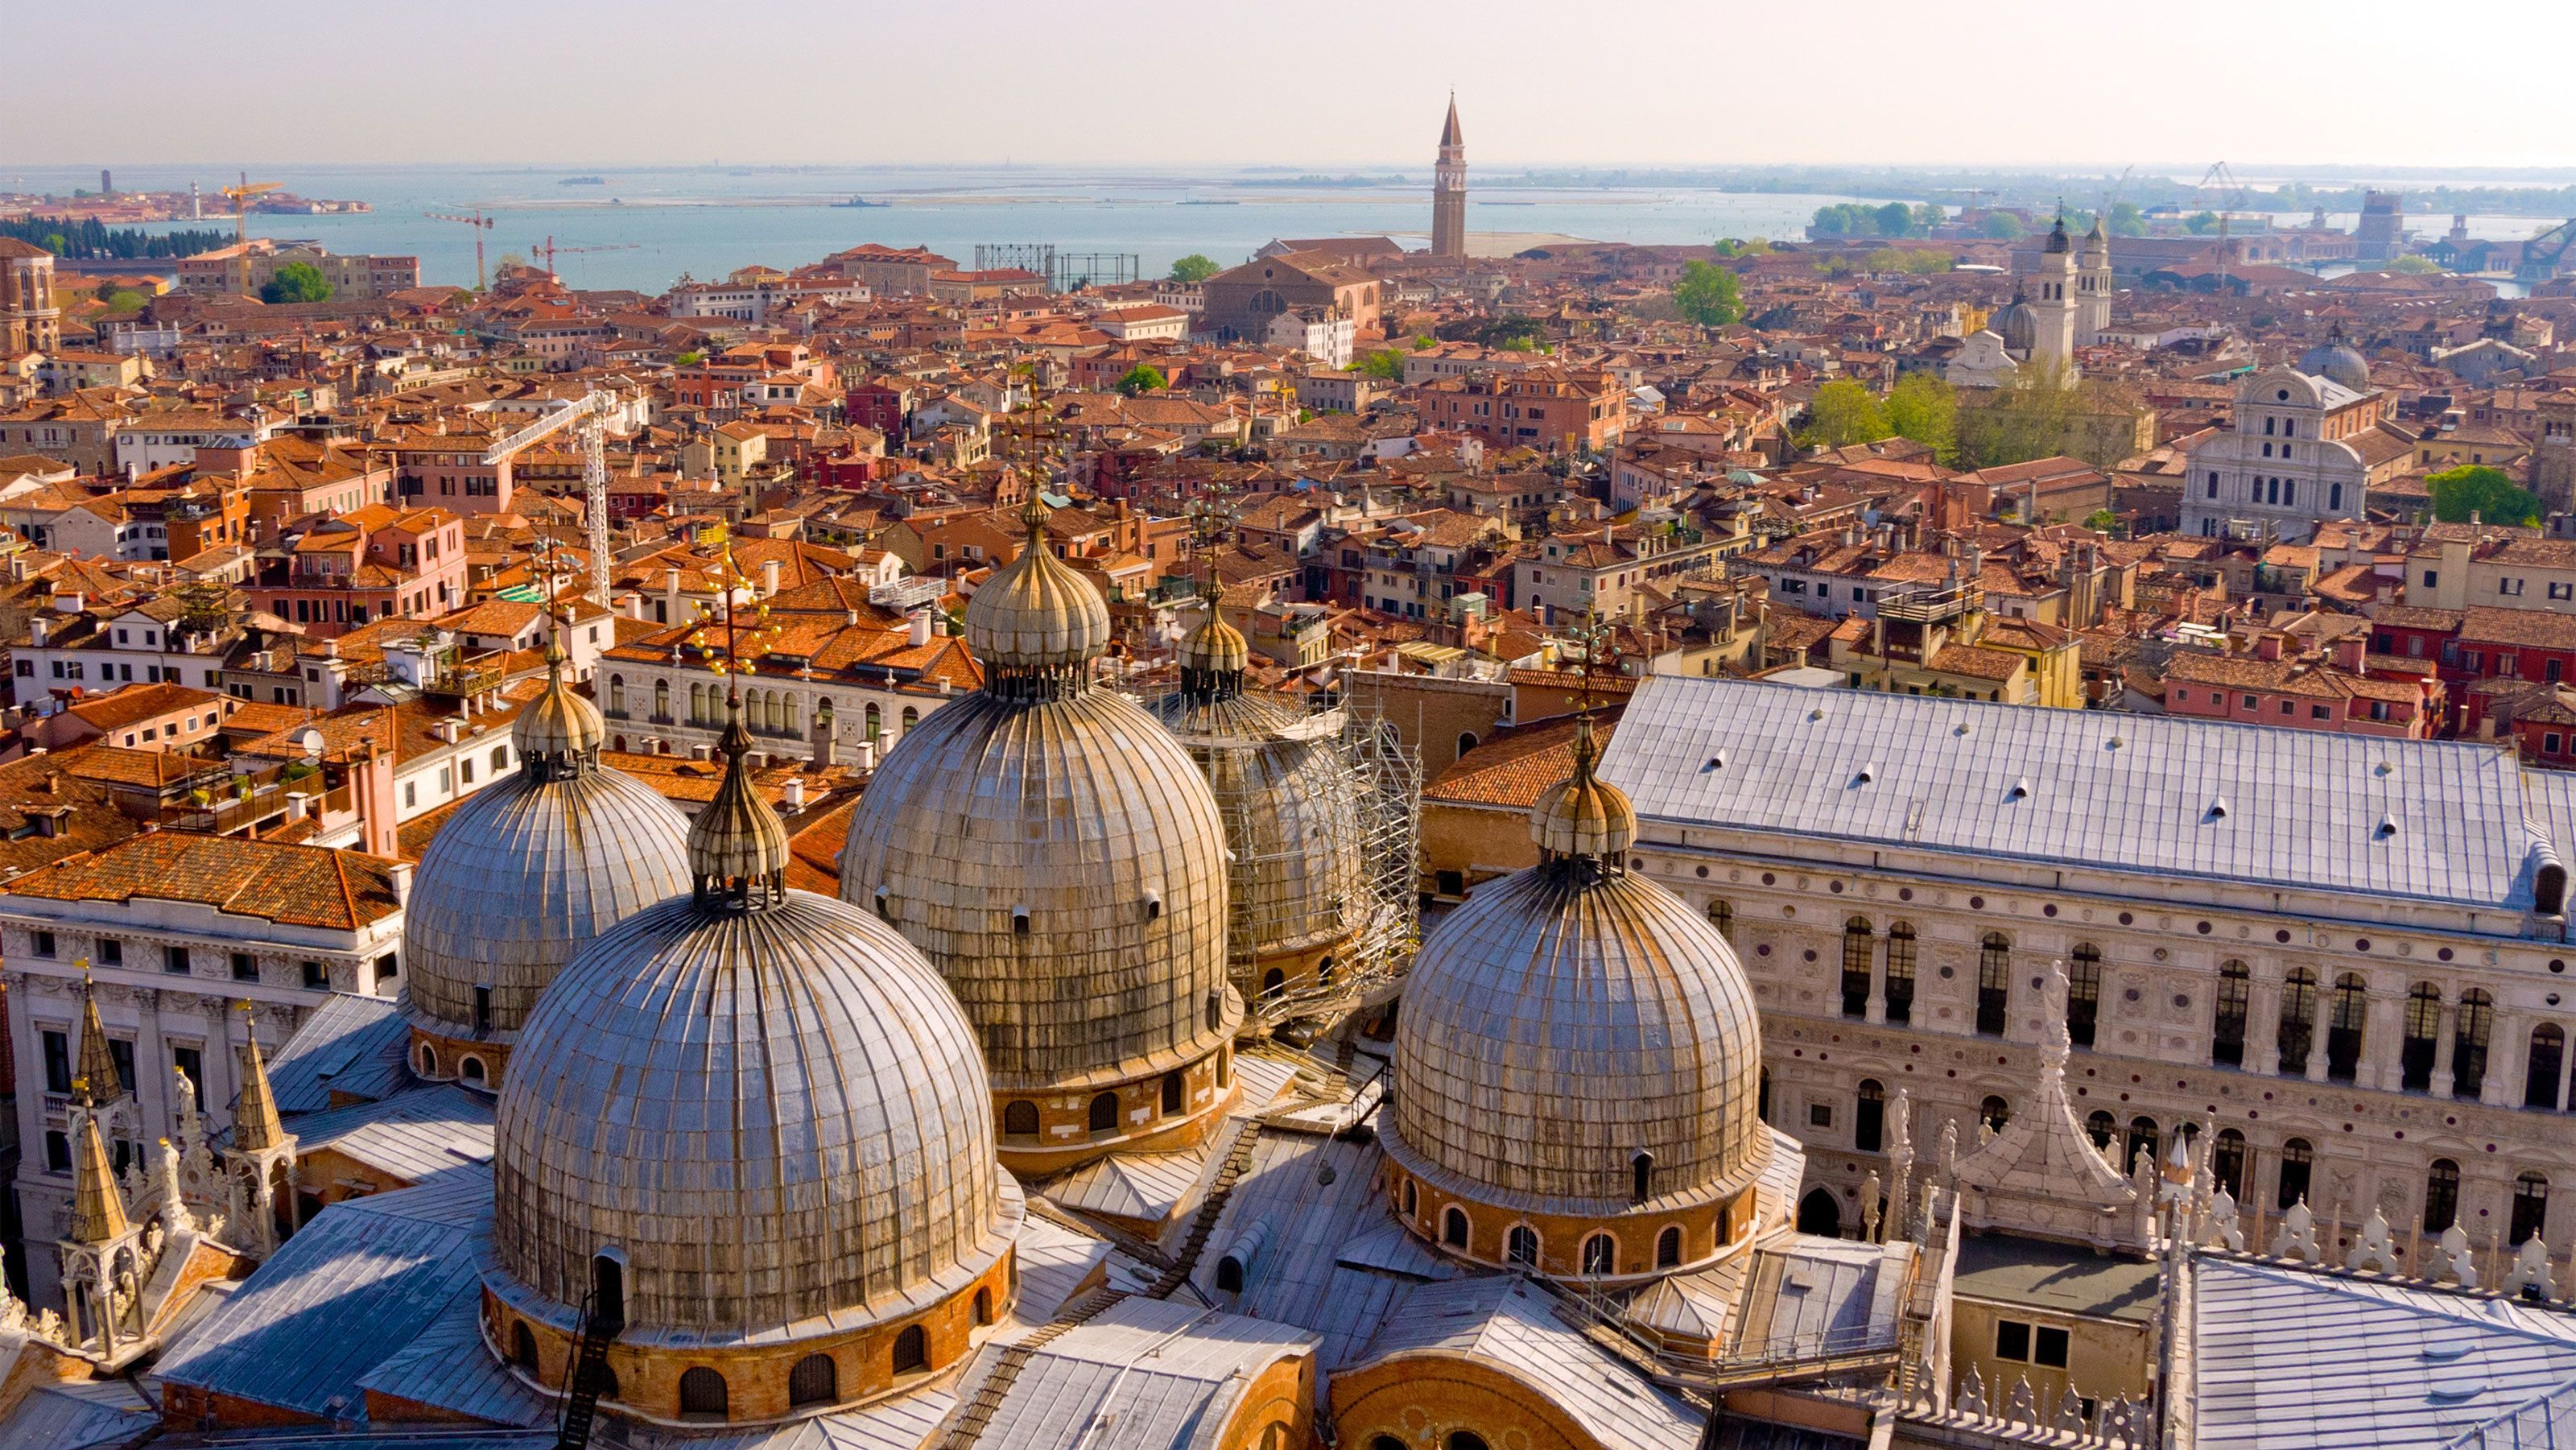 the domed structure of Saint Mark's Basilica in Venice